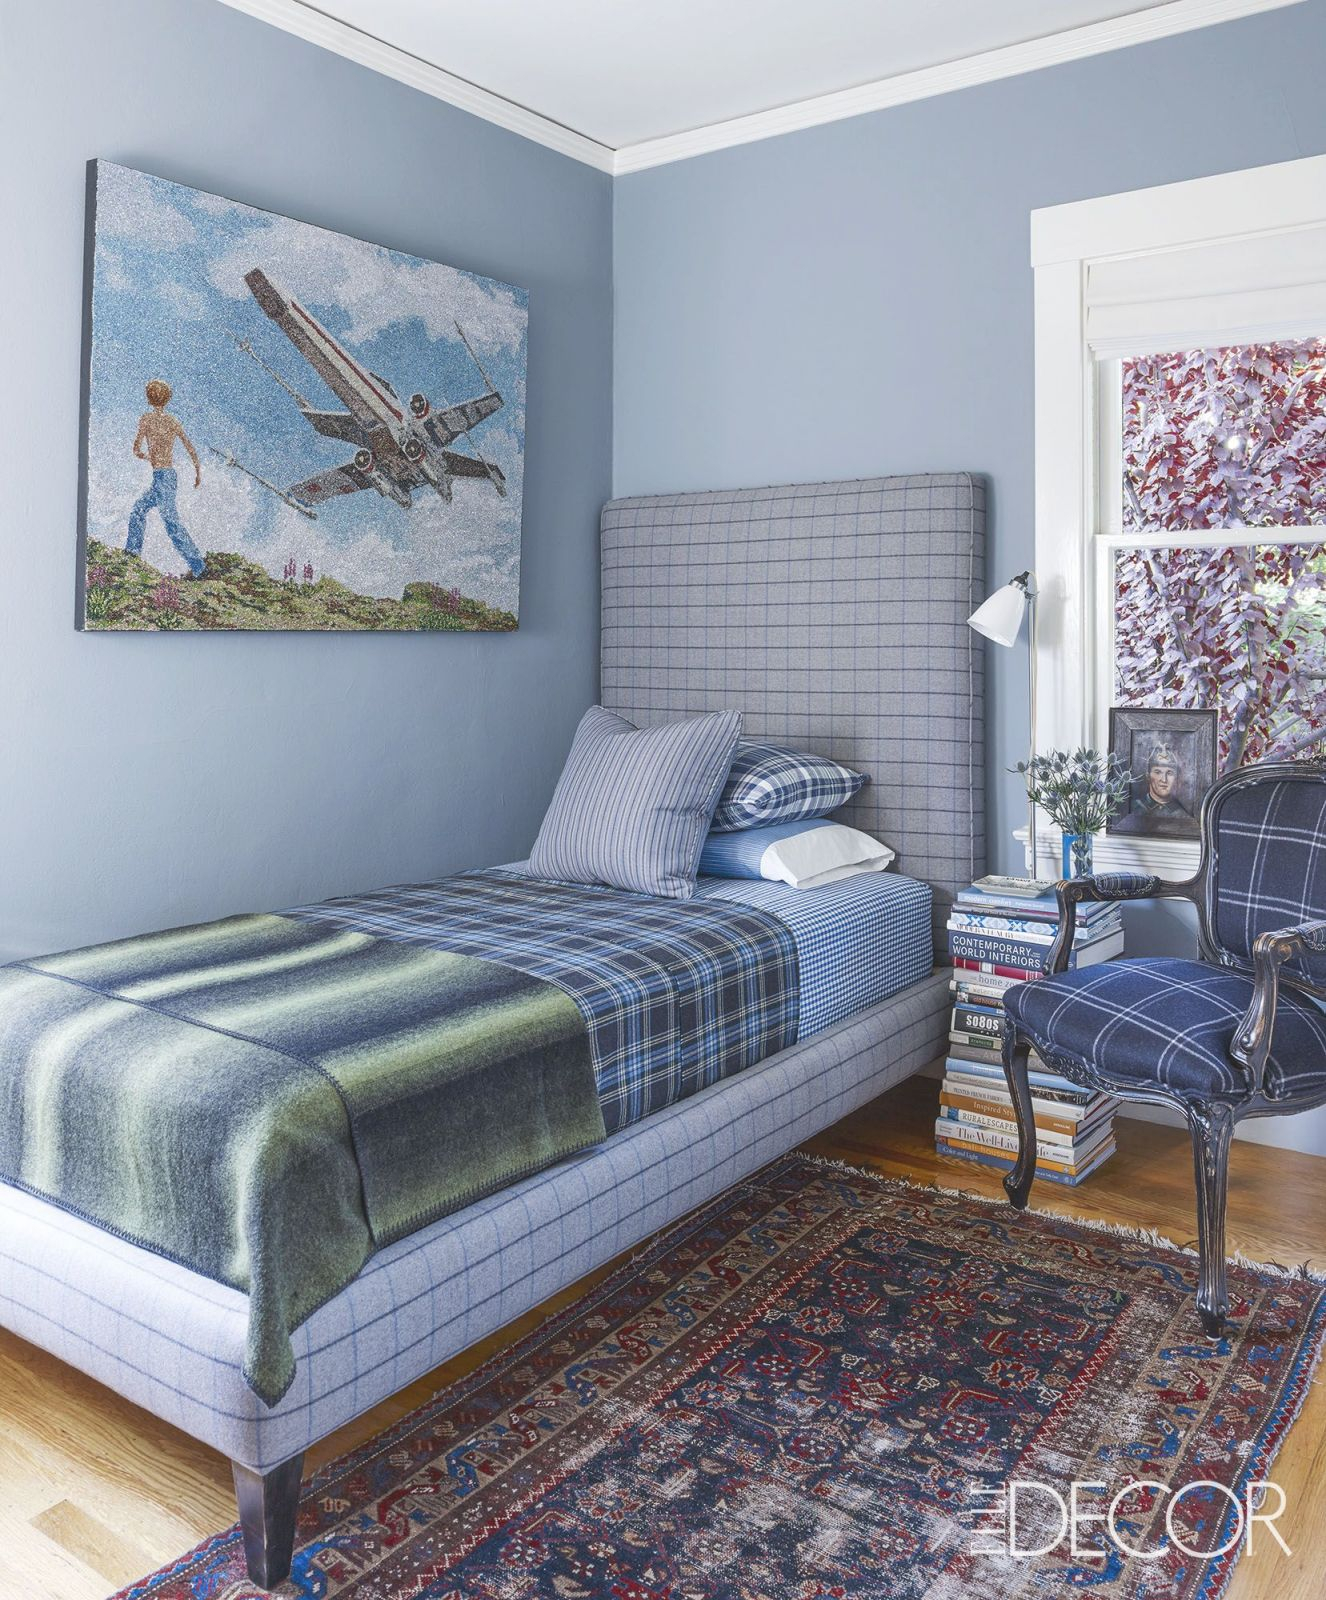 55 Small Bedroom Design Ideas – Decorating Tips For Small intended for Elegant Small Bedroom Decorating Ideas